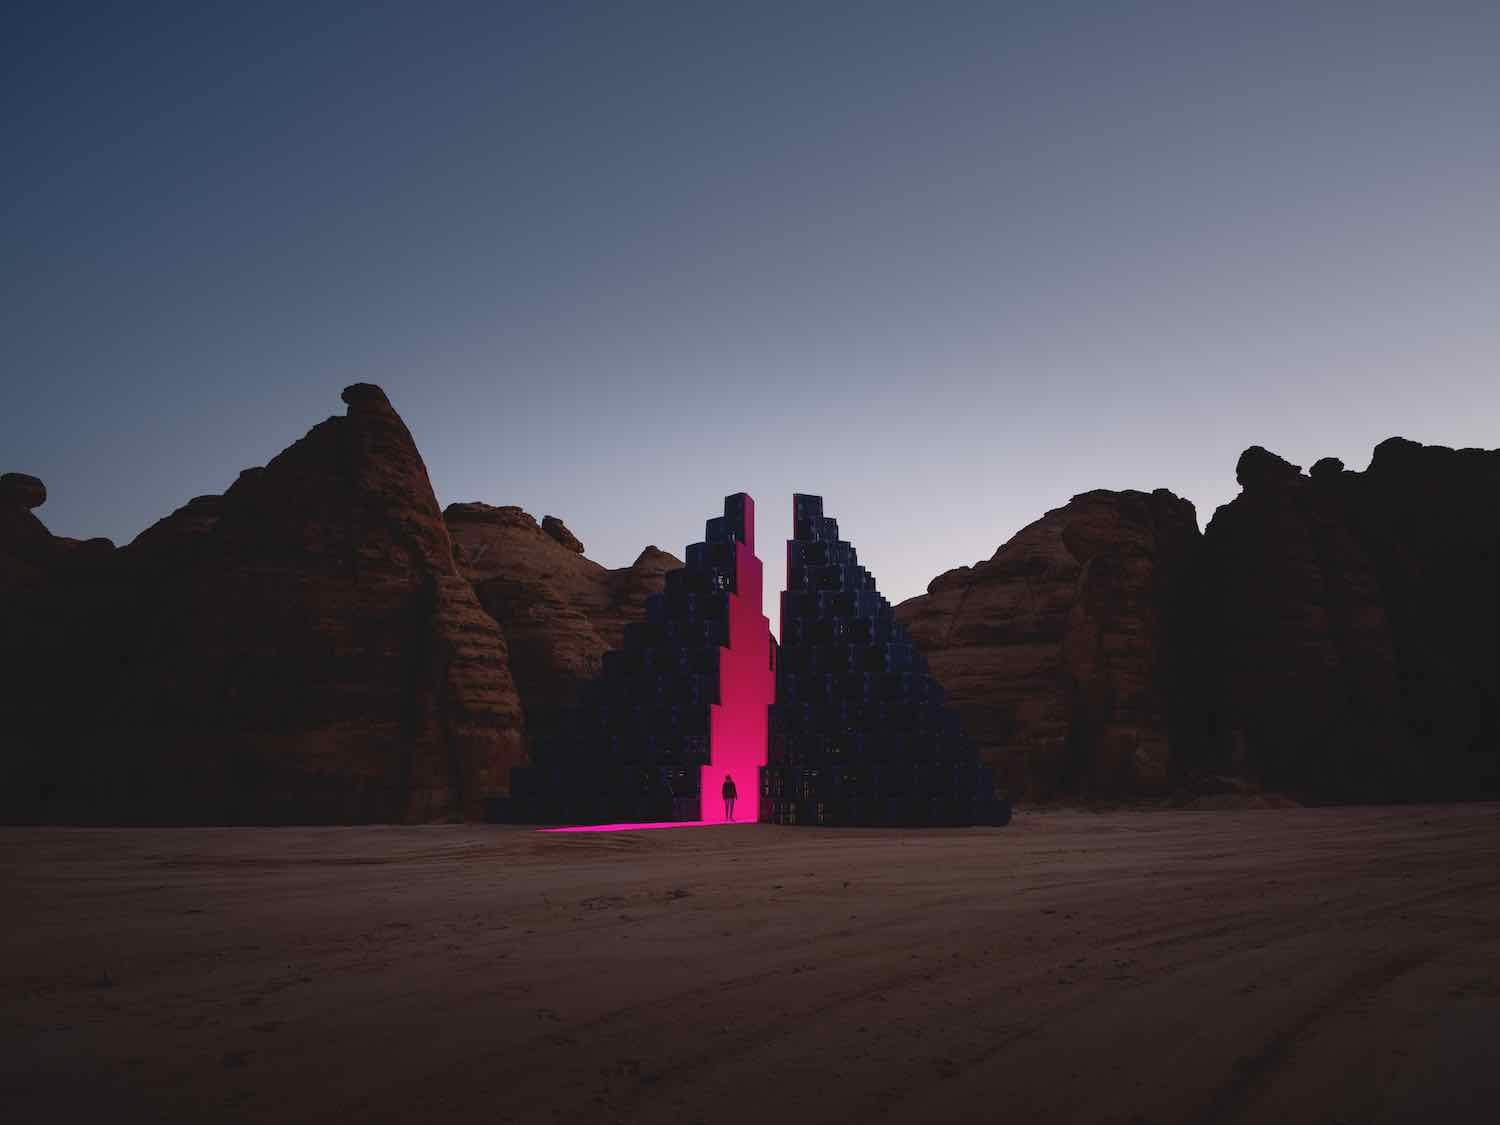 Desert X AlUla 2020. Rashed Al Shashai - Photo by Lance Gerber.